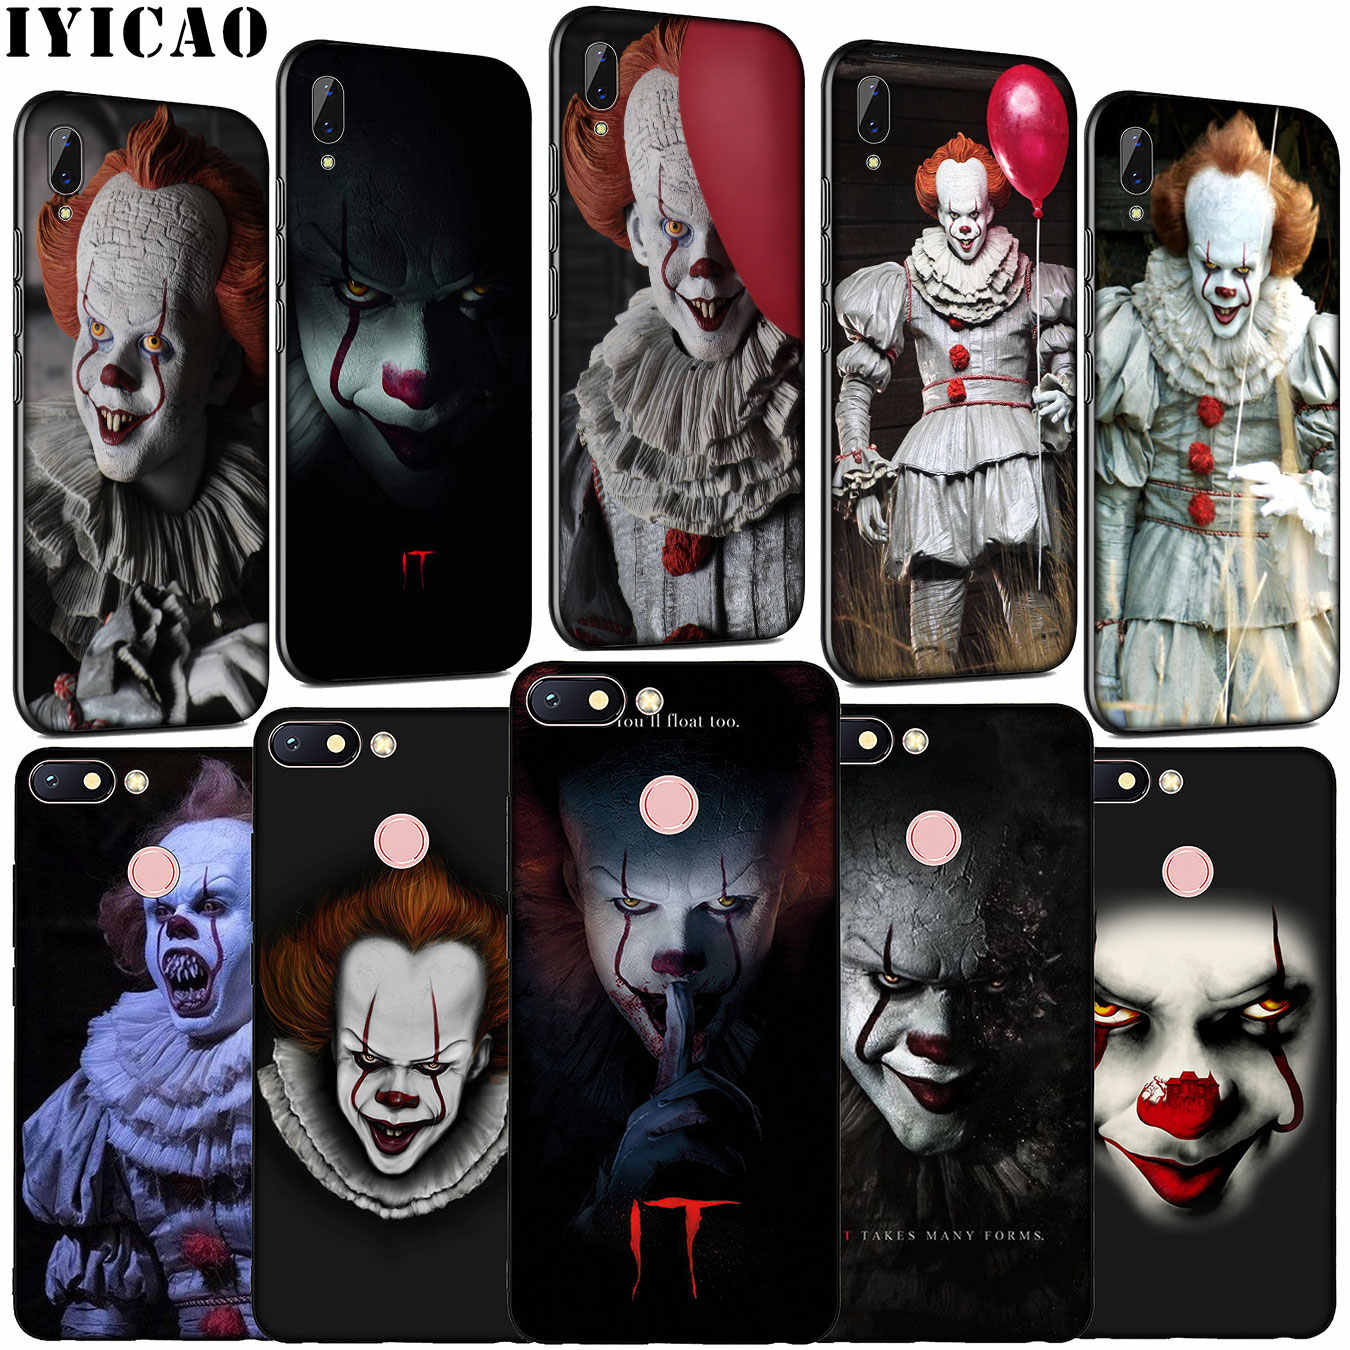 Iyicao De Film Het Pennywise Zachte Siliconen Telefoon Case Voor Xiaomi Redmi Note 8 8T 8A 7 7A 6 6A 5 5A K30 K20 Pro Gaan S2 Cover